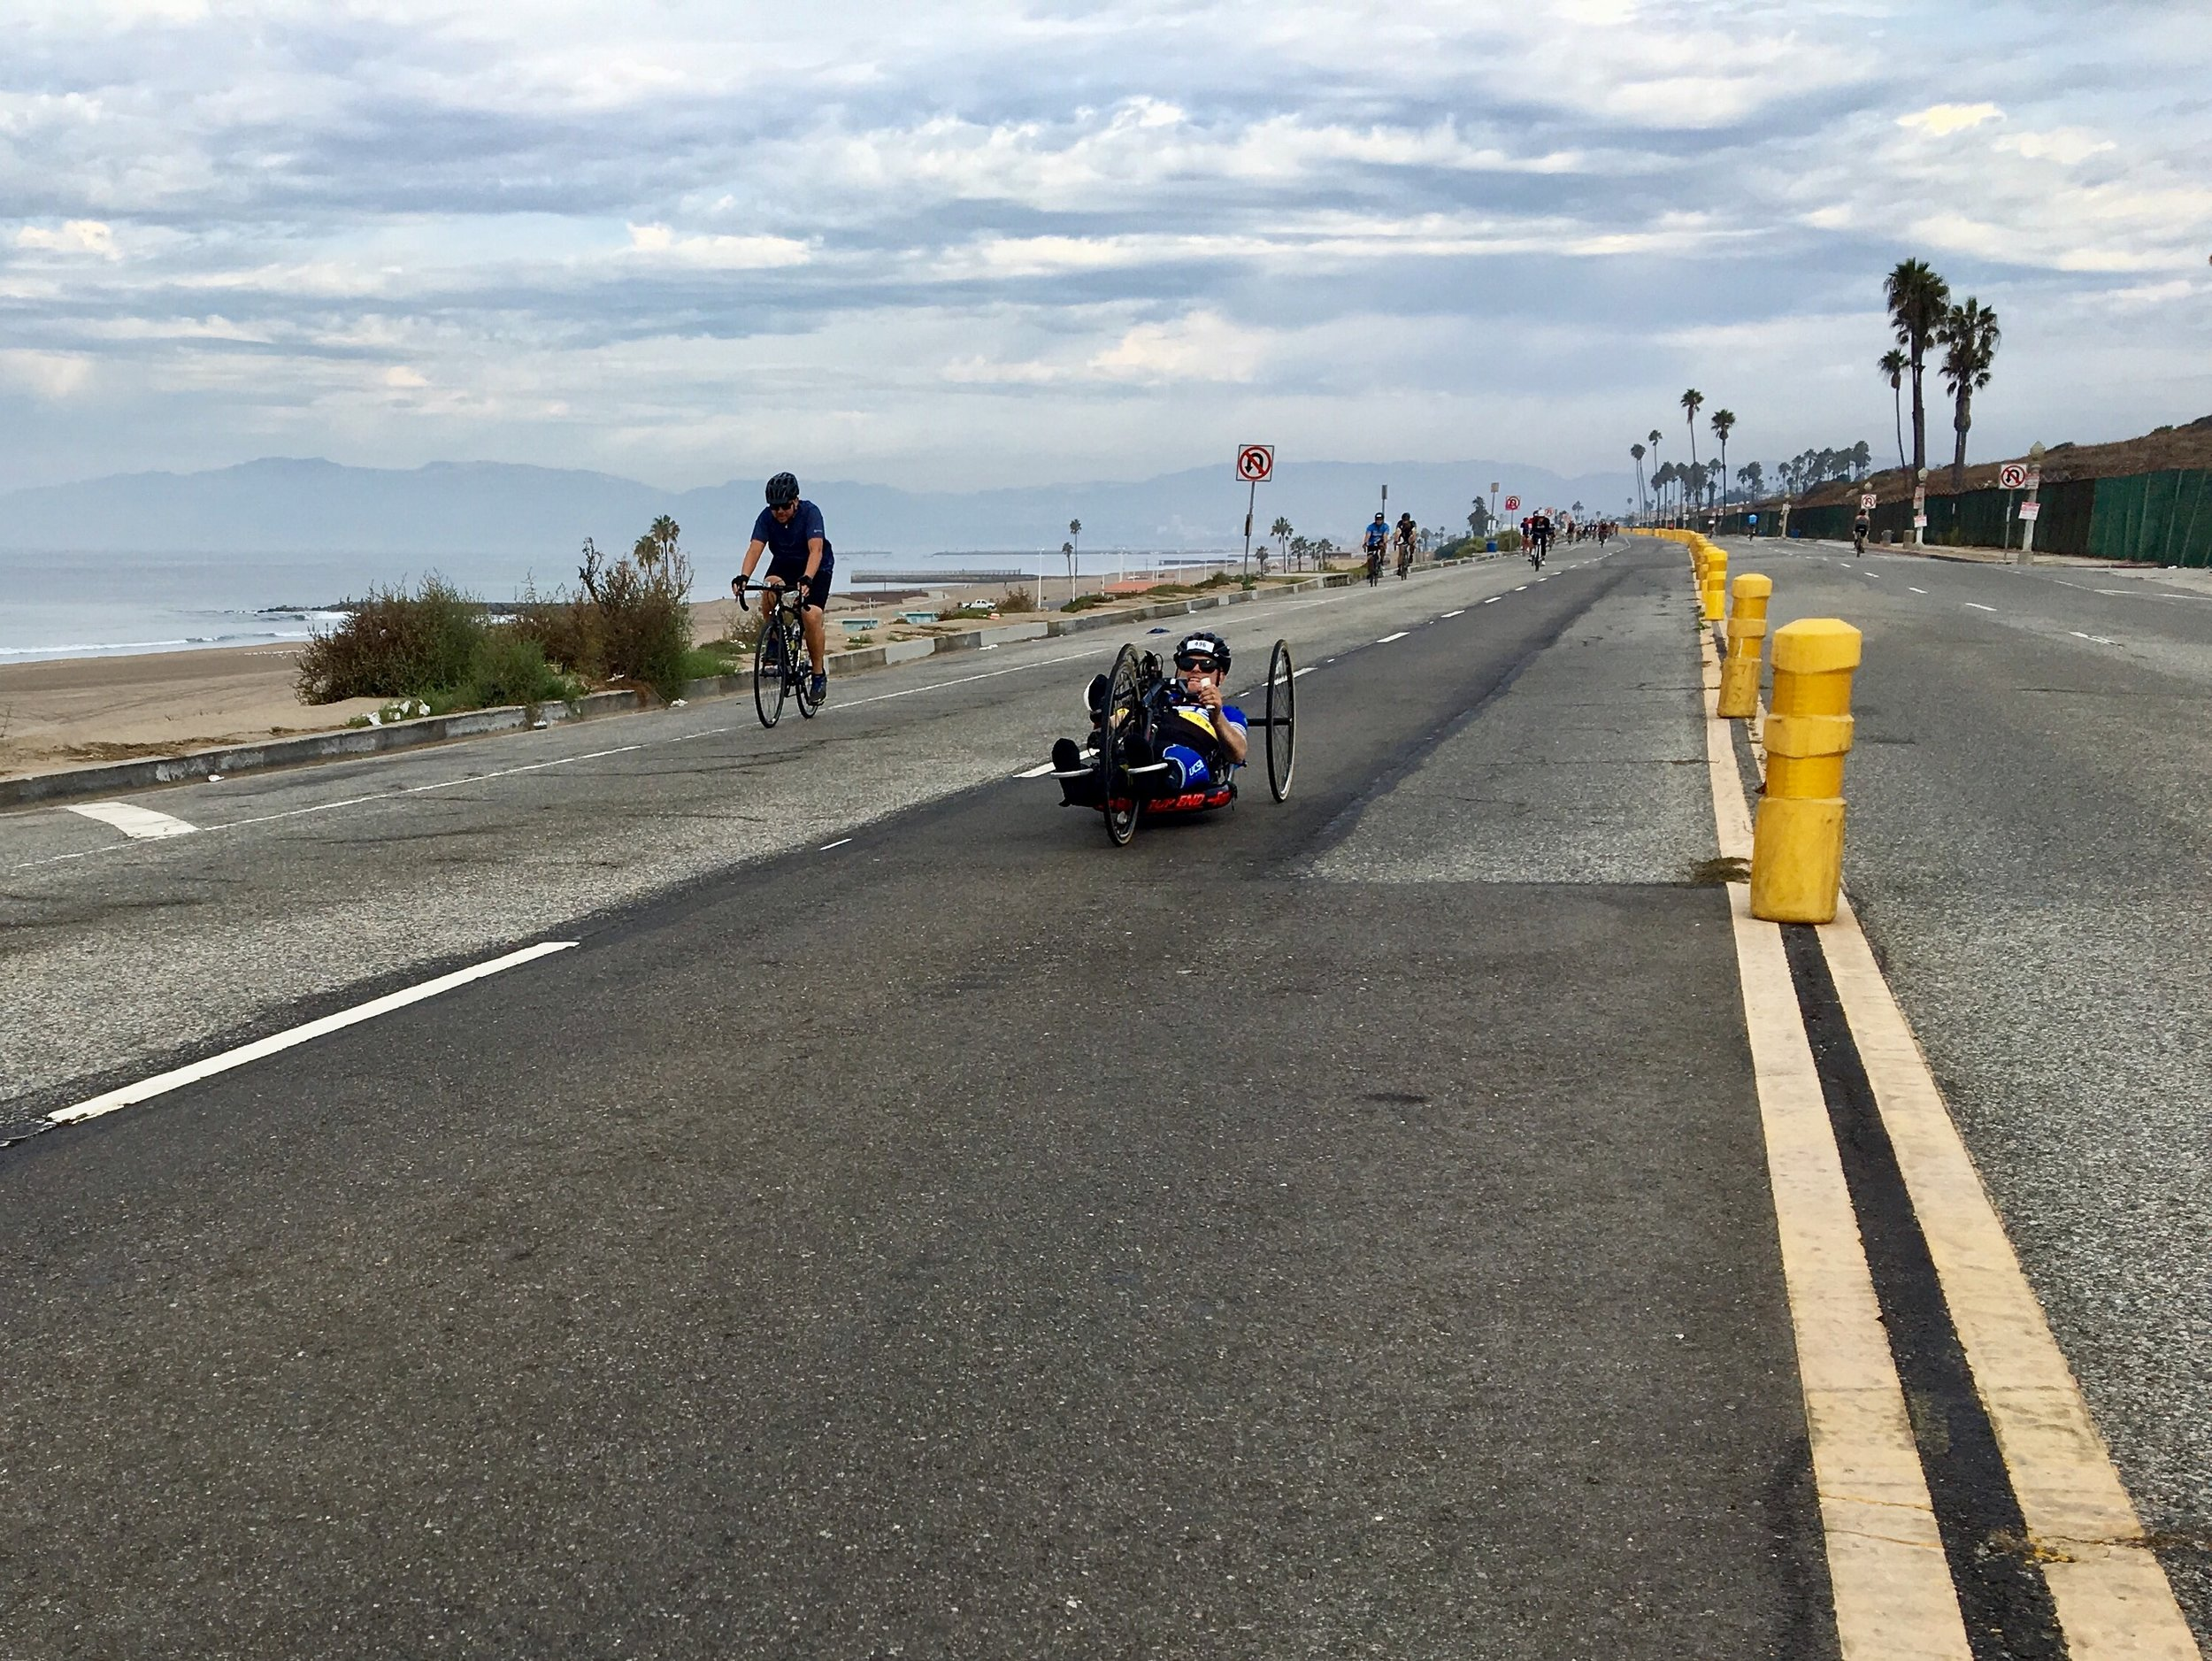 Ryan flying on his handcycle